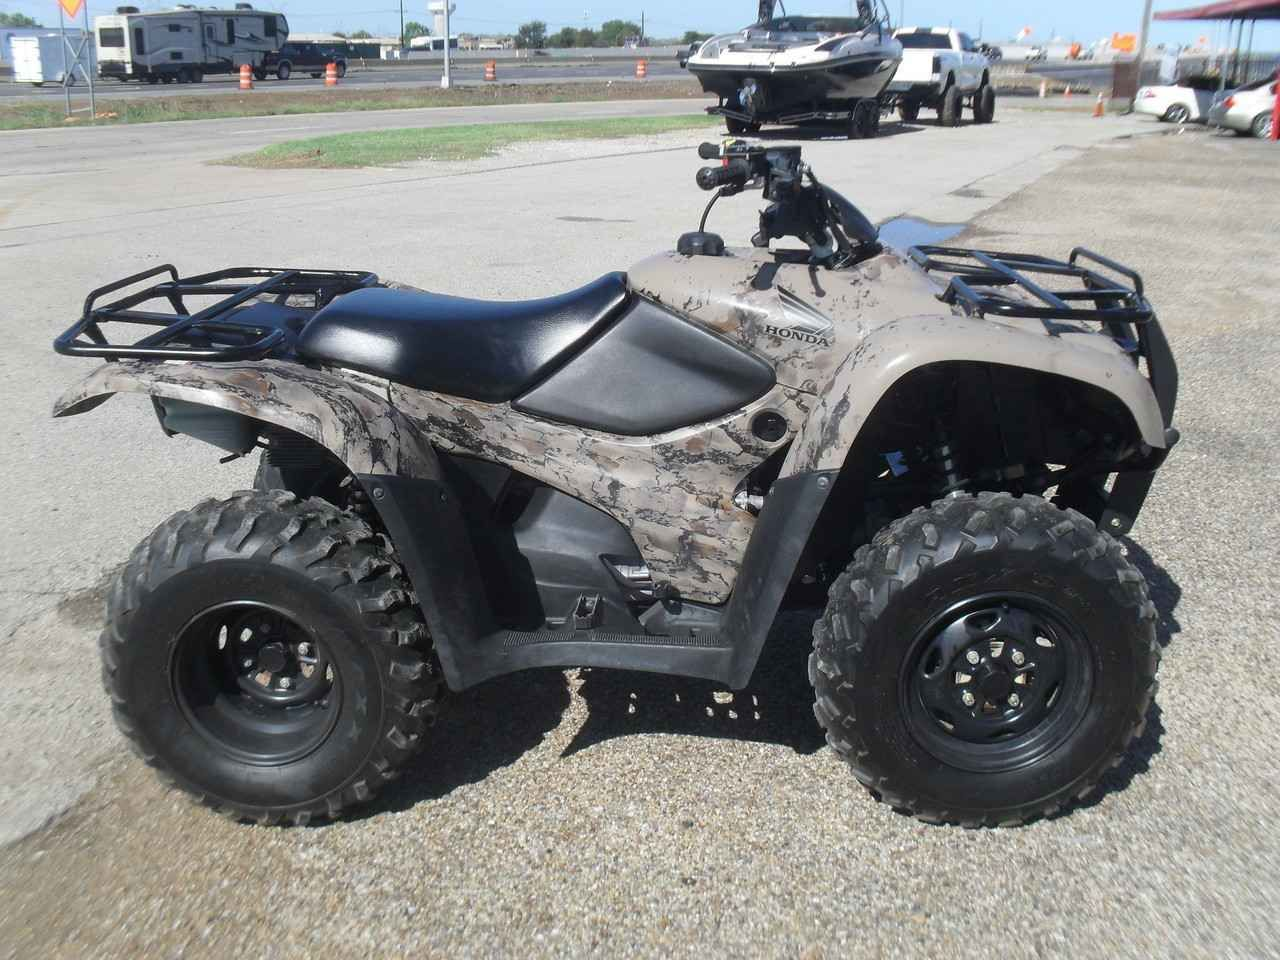 Used 2013 Honda FOURTRAX RANCHER 420 4X4 ATVs For Sale in